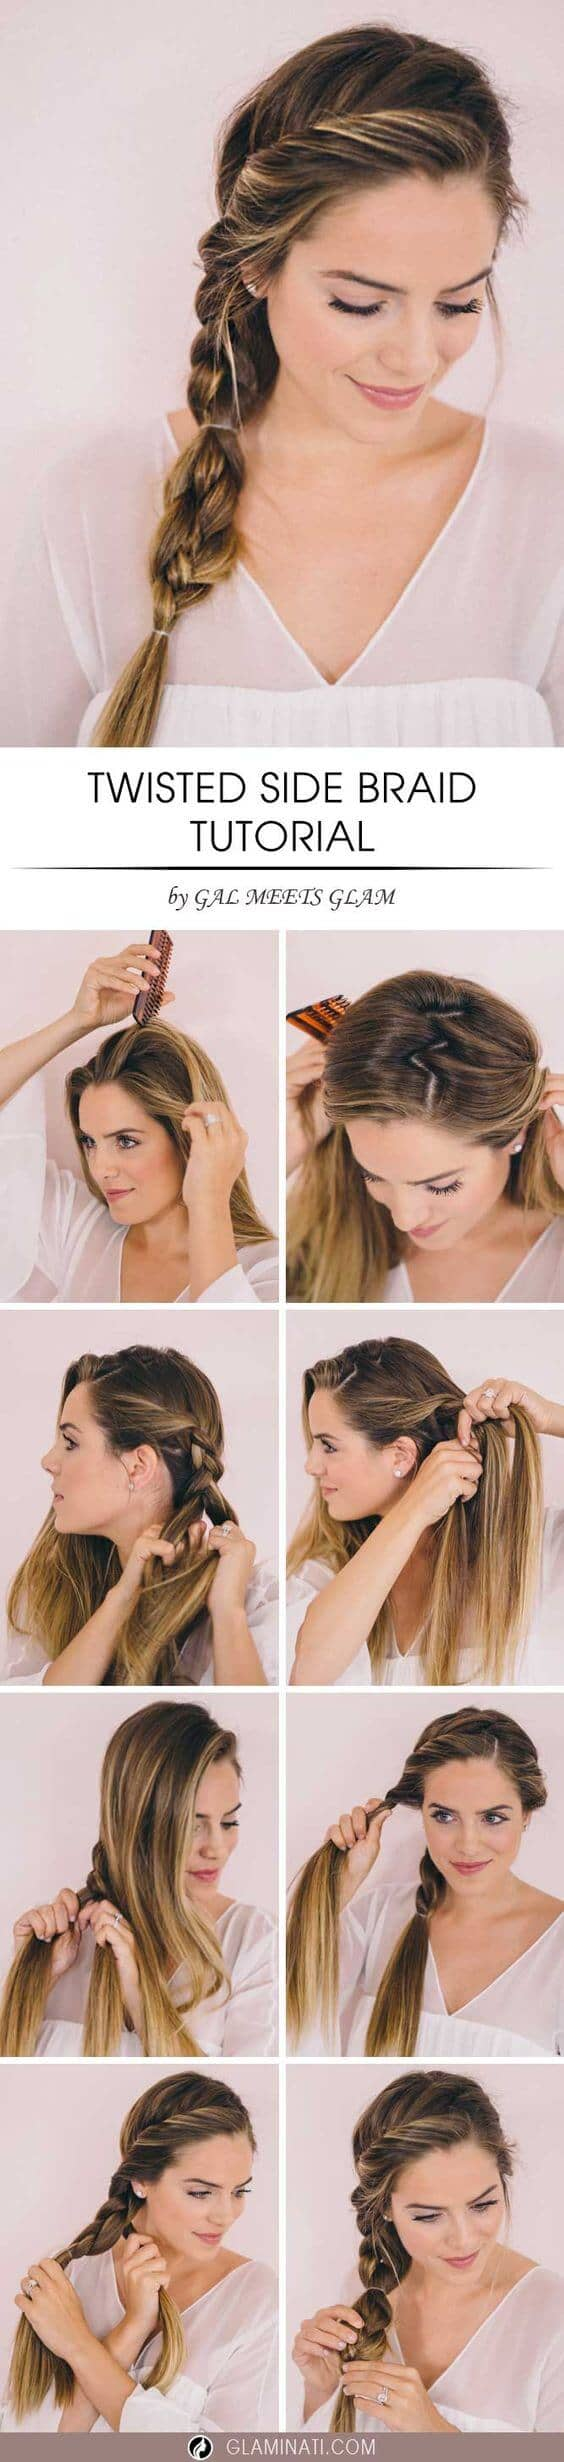 31 Special Festival Hairstyles